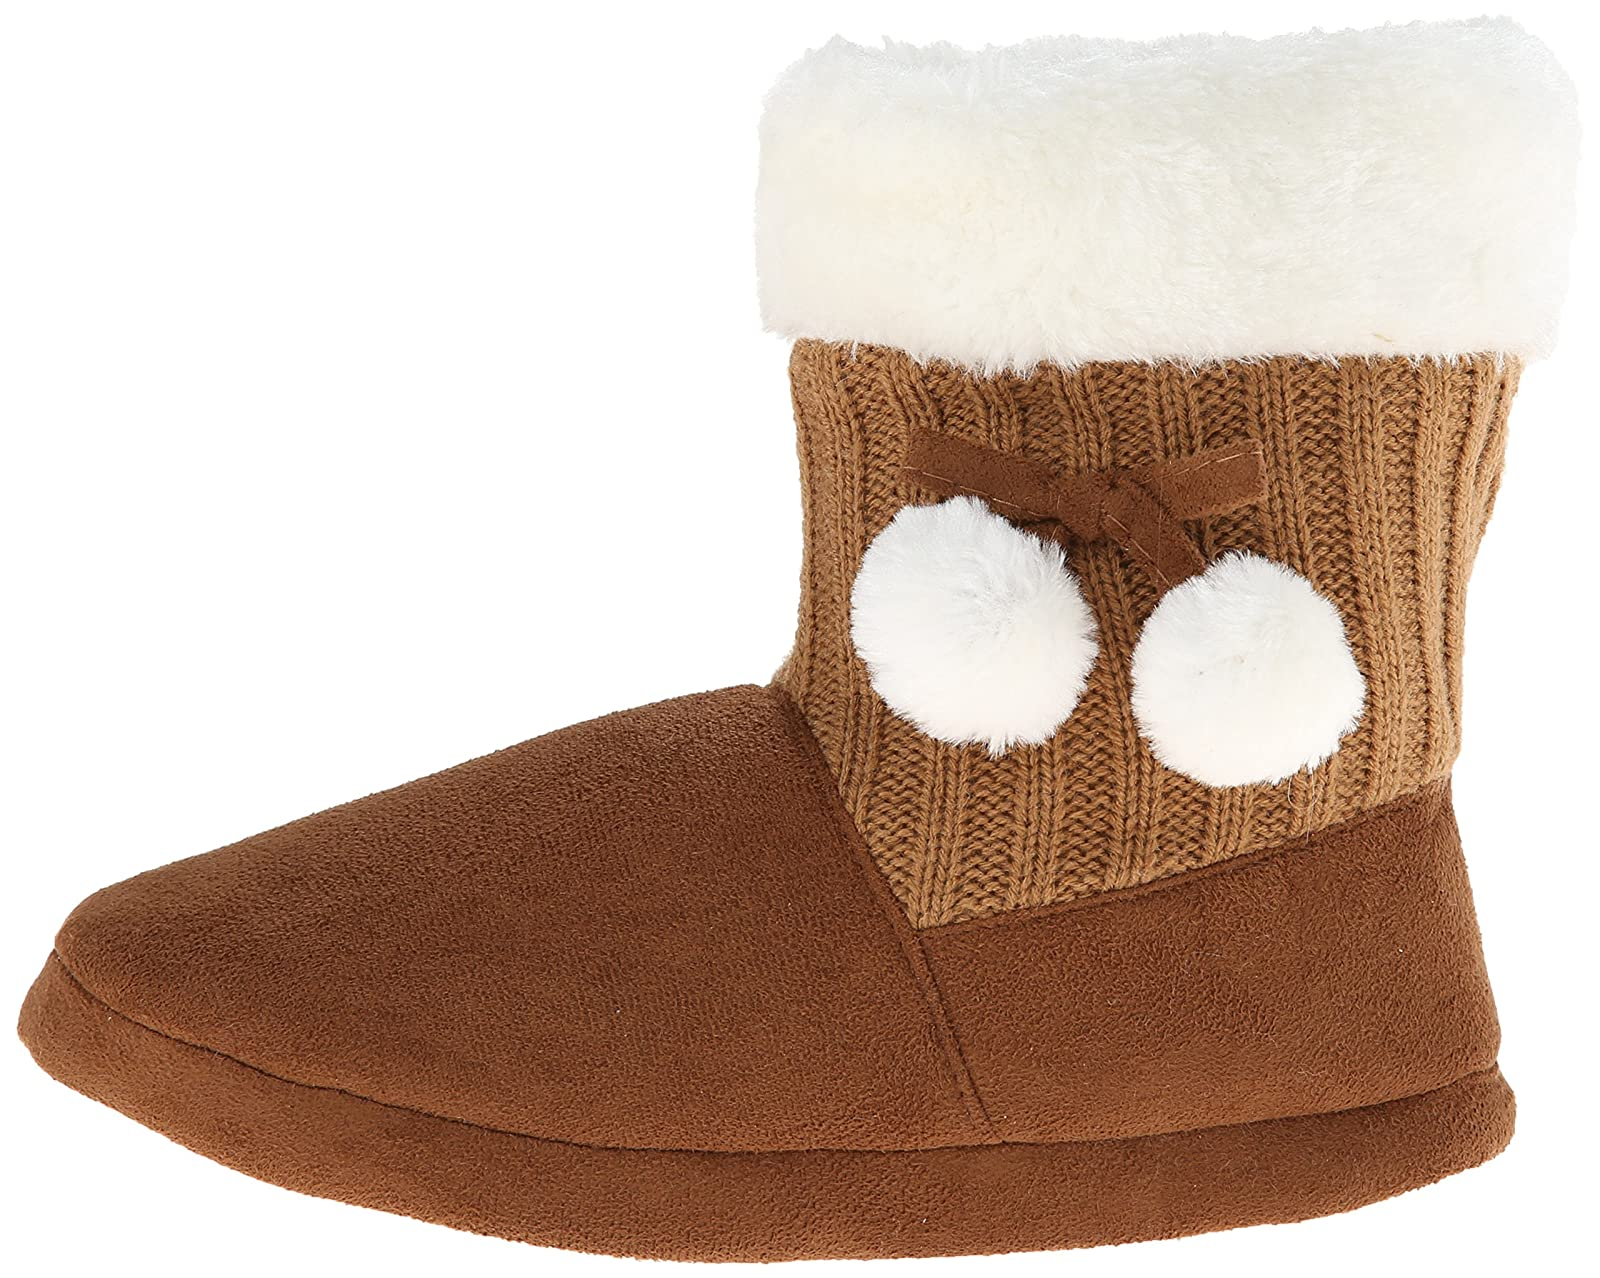 Gold Toe Women's Pom Pom Pom - 5